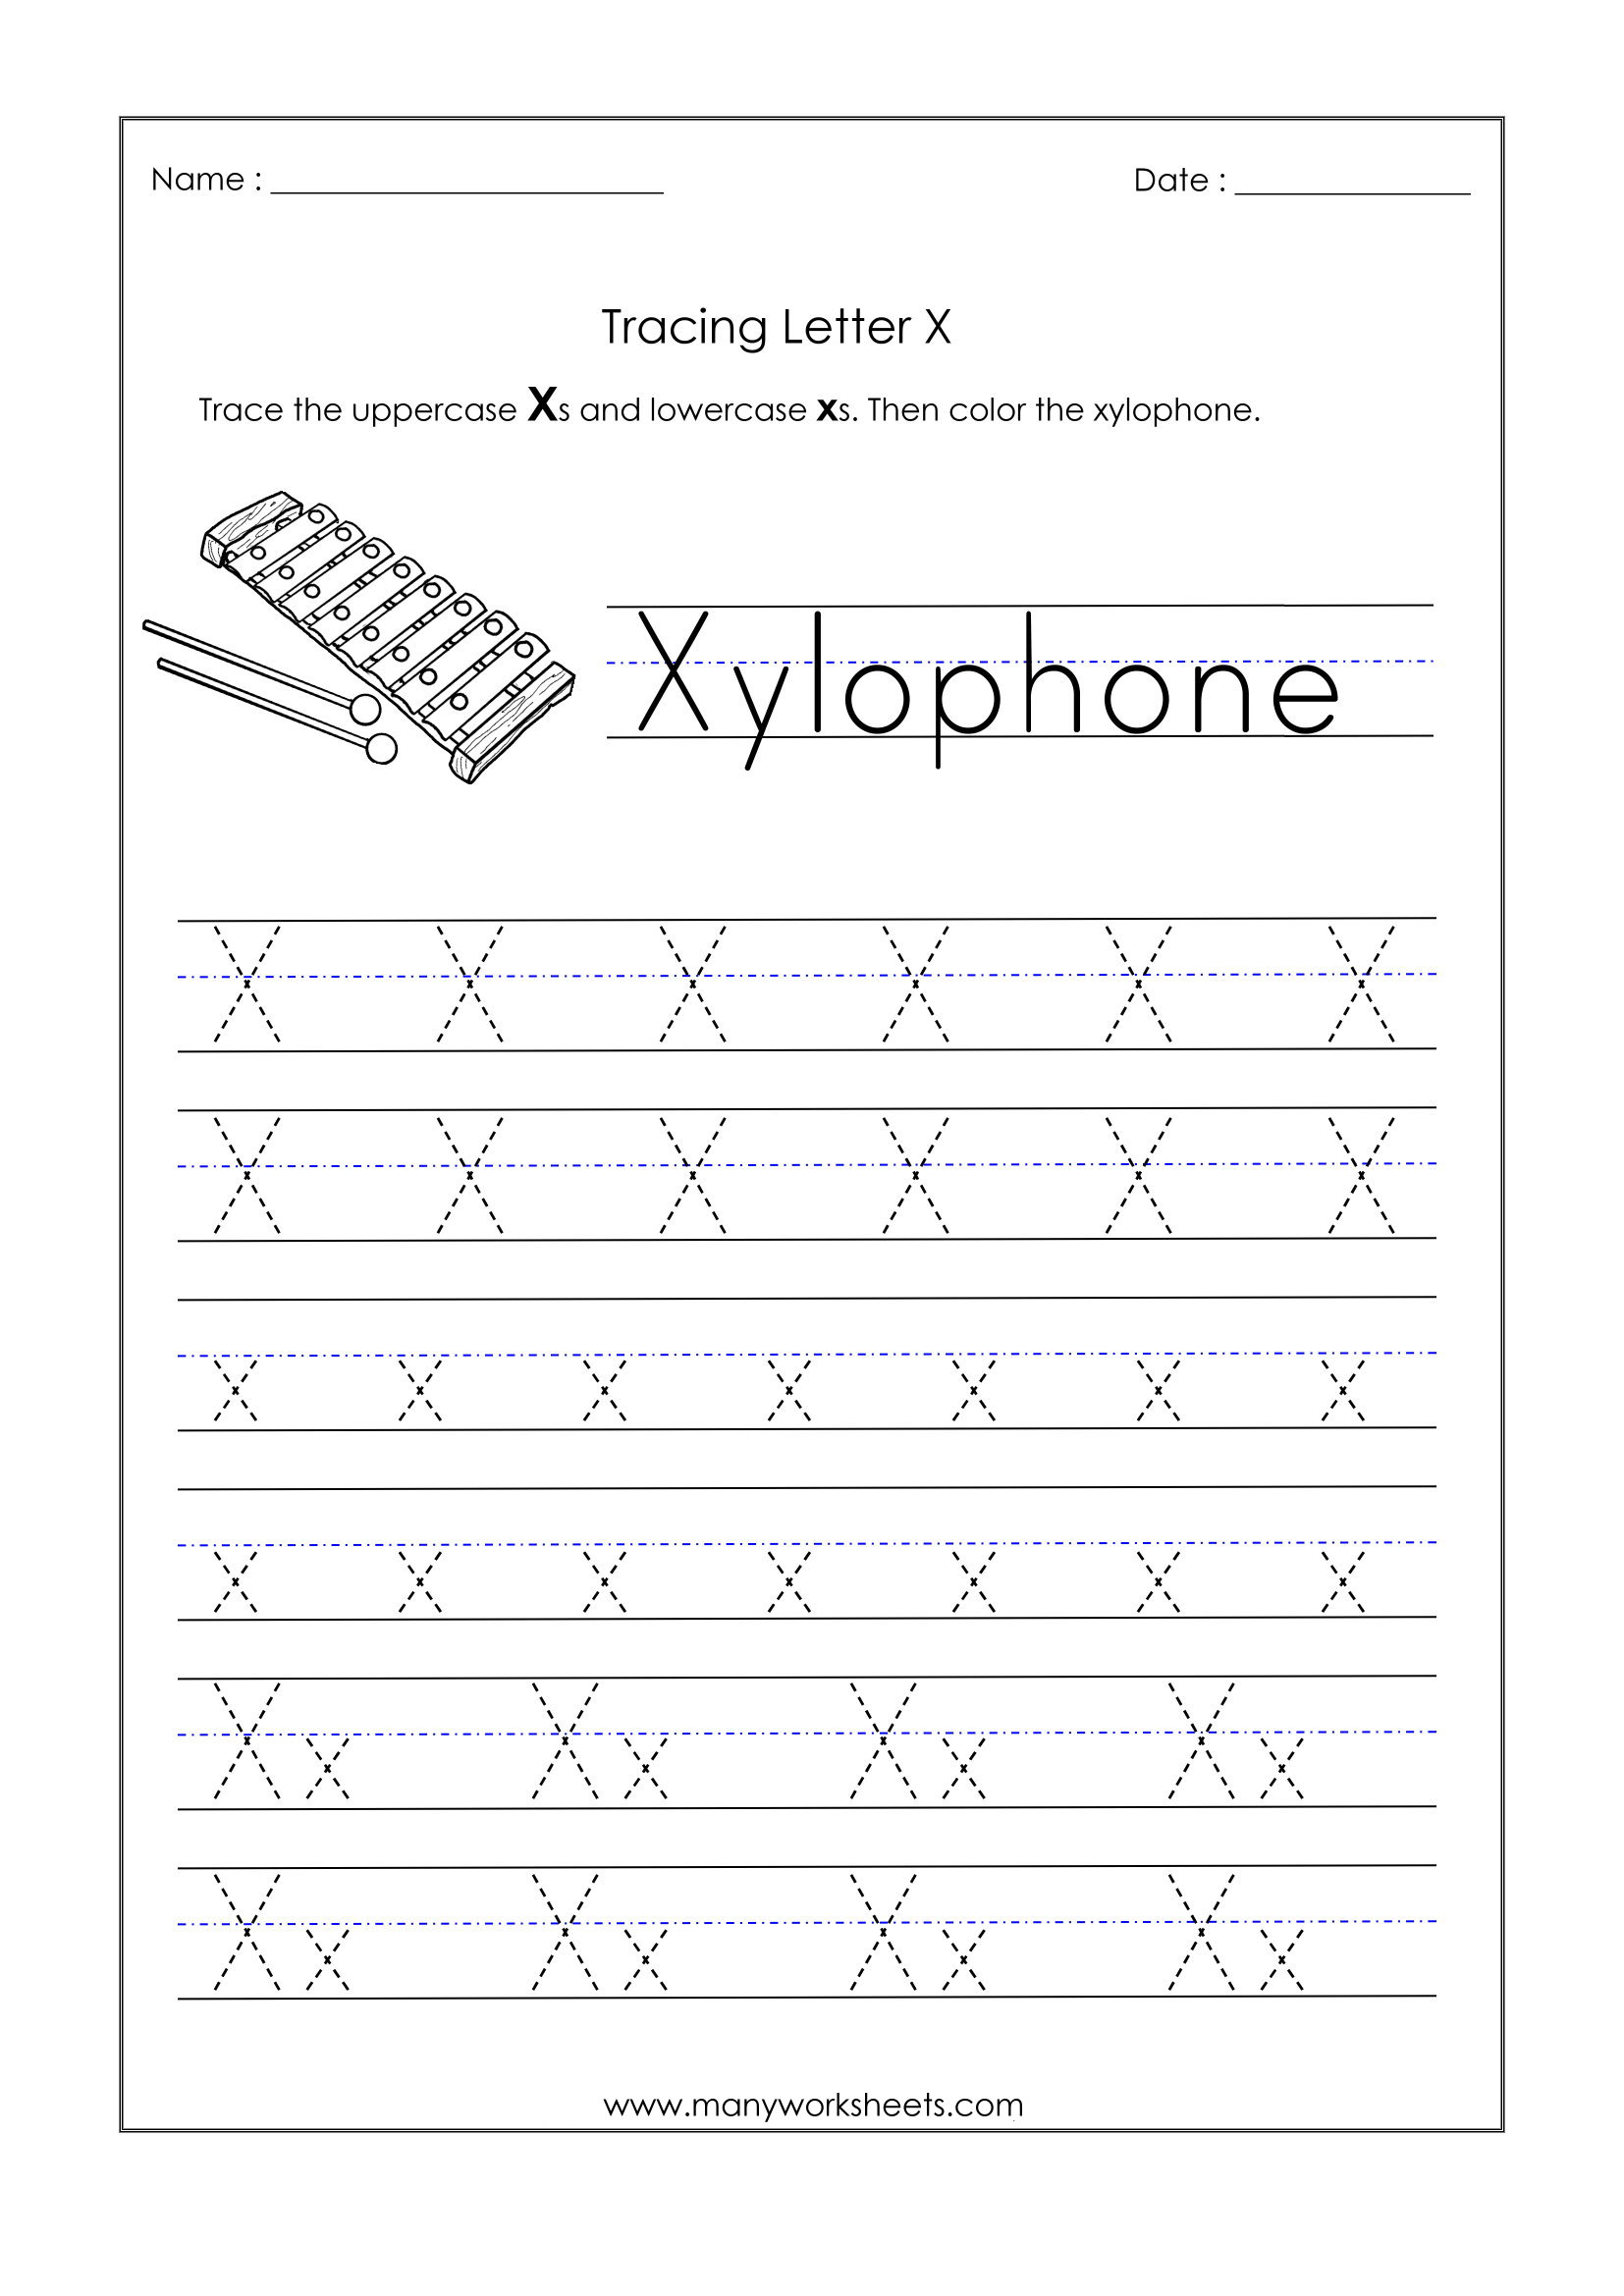 Worksheet ~ Alphabetiting Sheets Letter X Tracing Worksheet inside Letter Tracing X